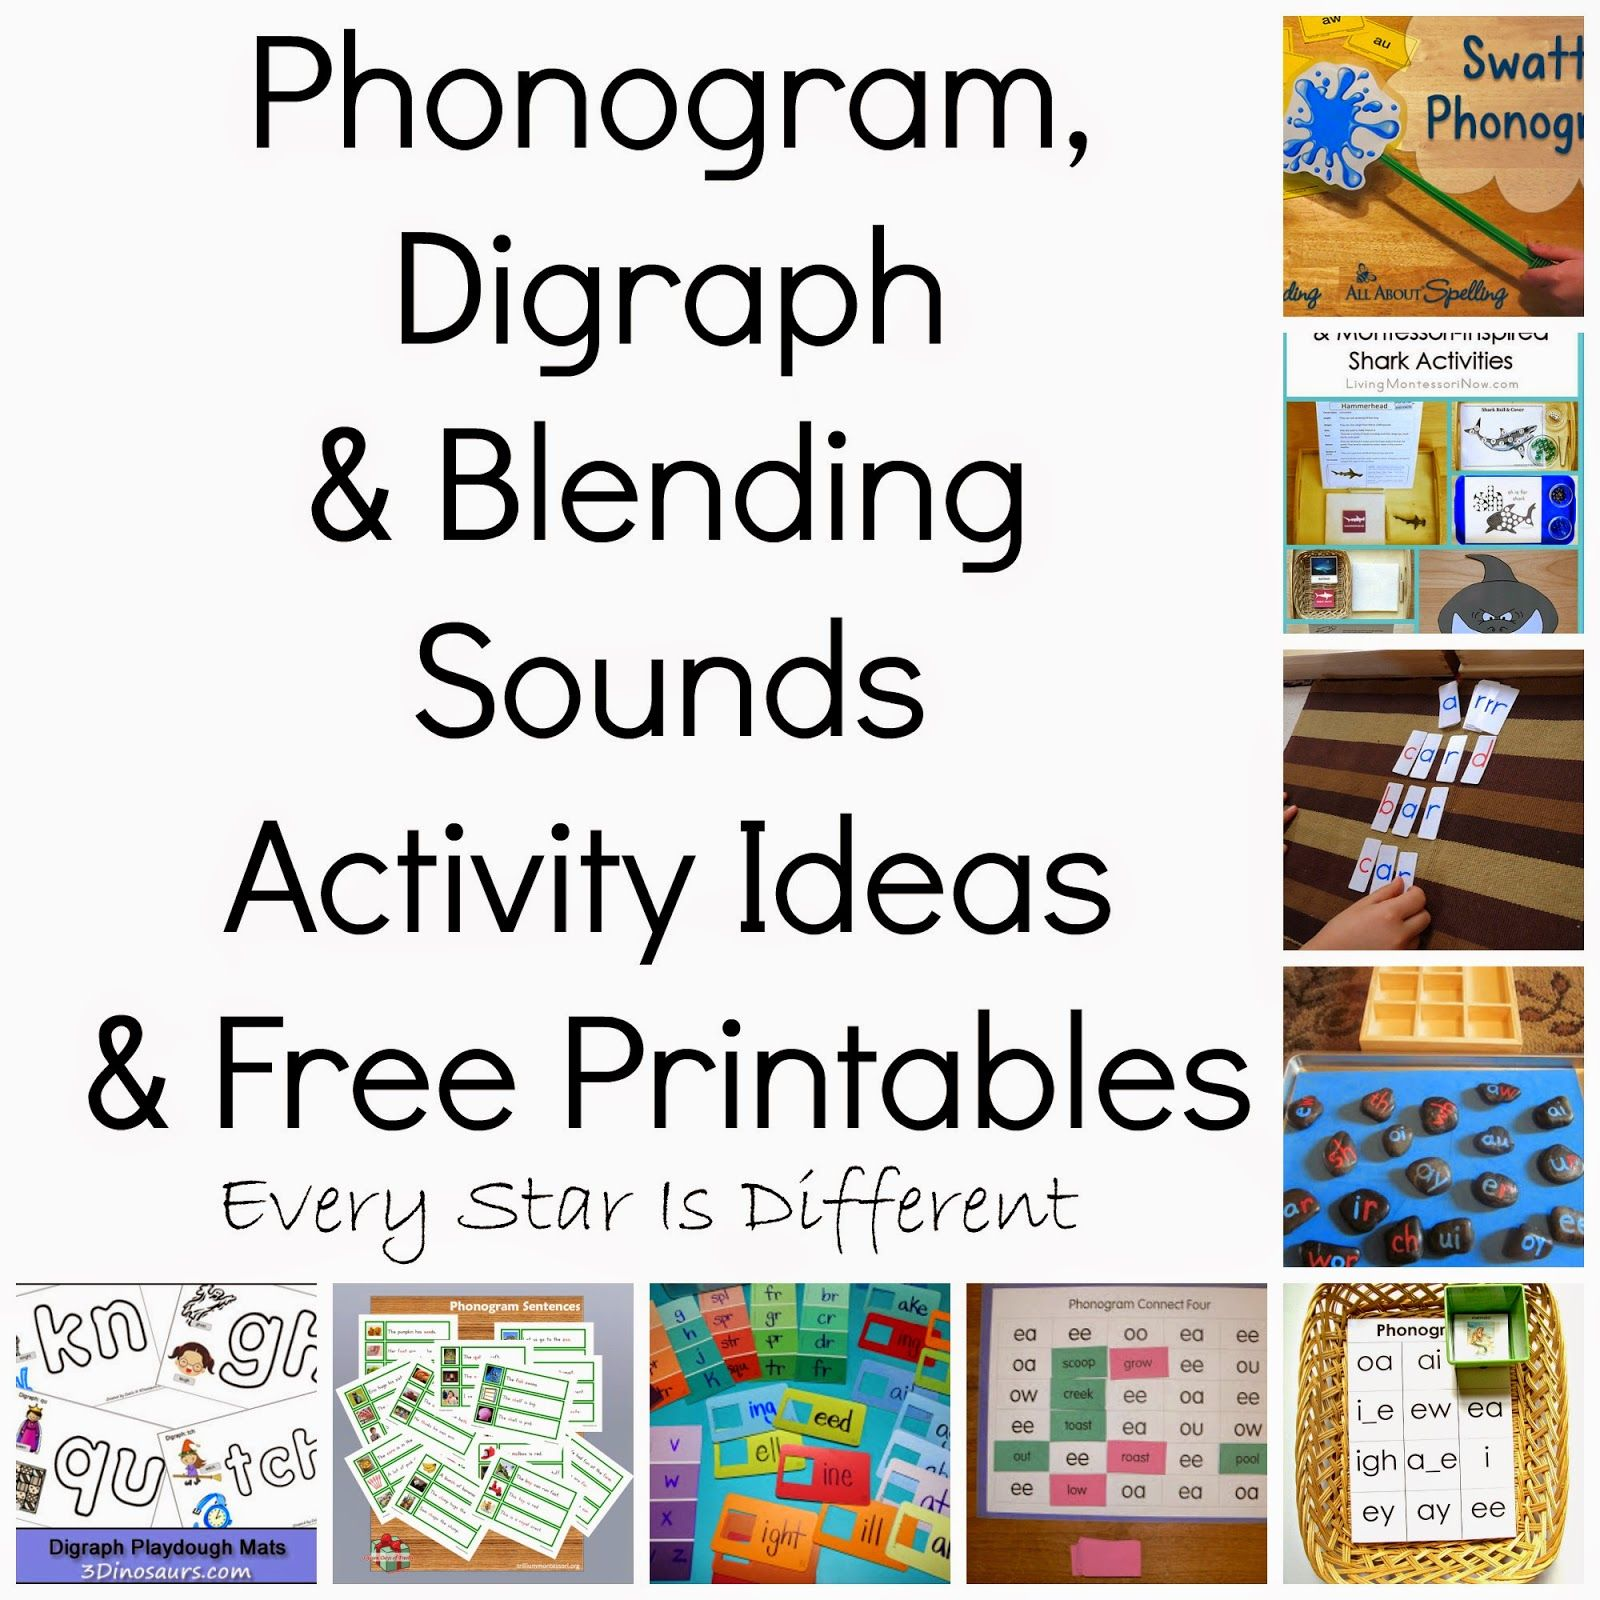 Phonogram Digraph Amp Blending Sounds Activity Ideas Amp Free Printables Klp Linky Party